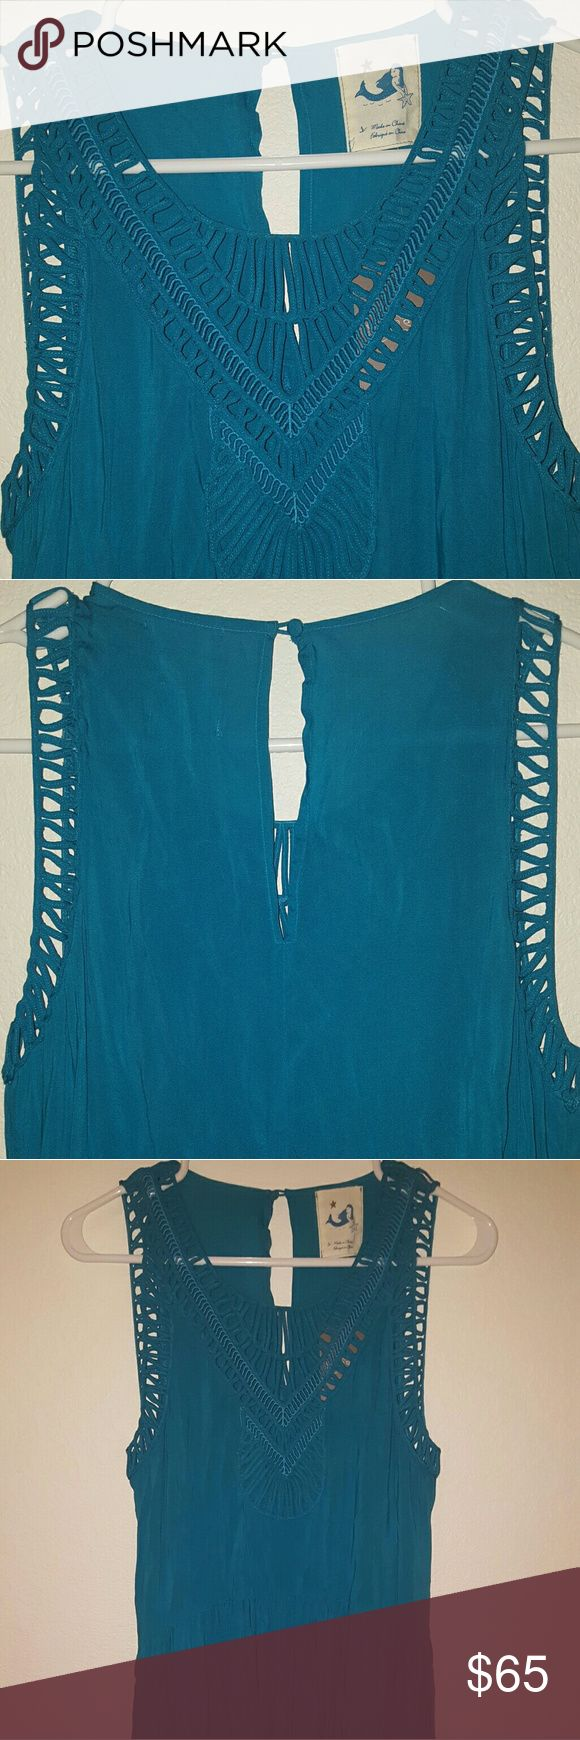 Anthropologie teal maxi dress New with tags, maxi dress Anthropologie Dresses Maxi